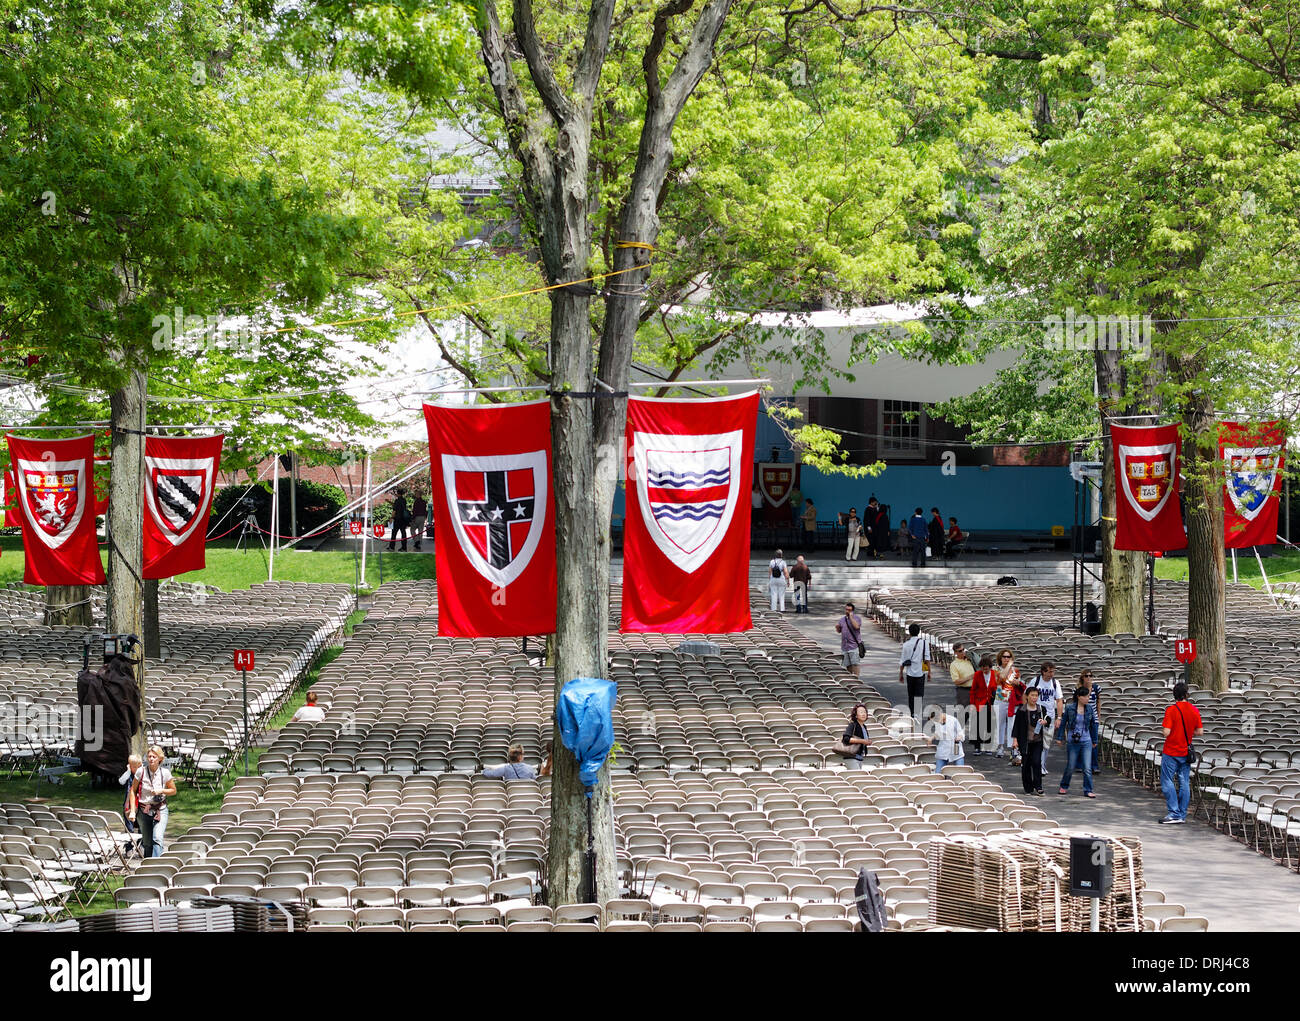 Harvard Yard, old heart of Harvard University campus, flagged and prepared for Commencement ceremonies in Cambridge, MA, USA. - Stock Image